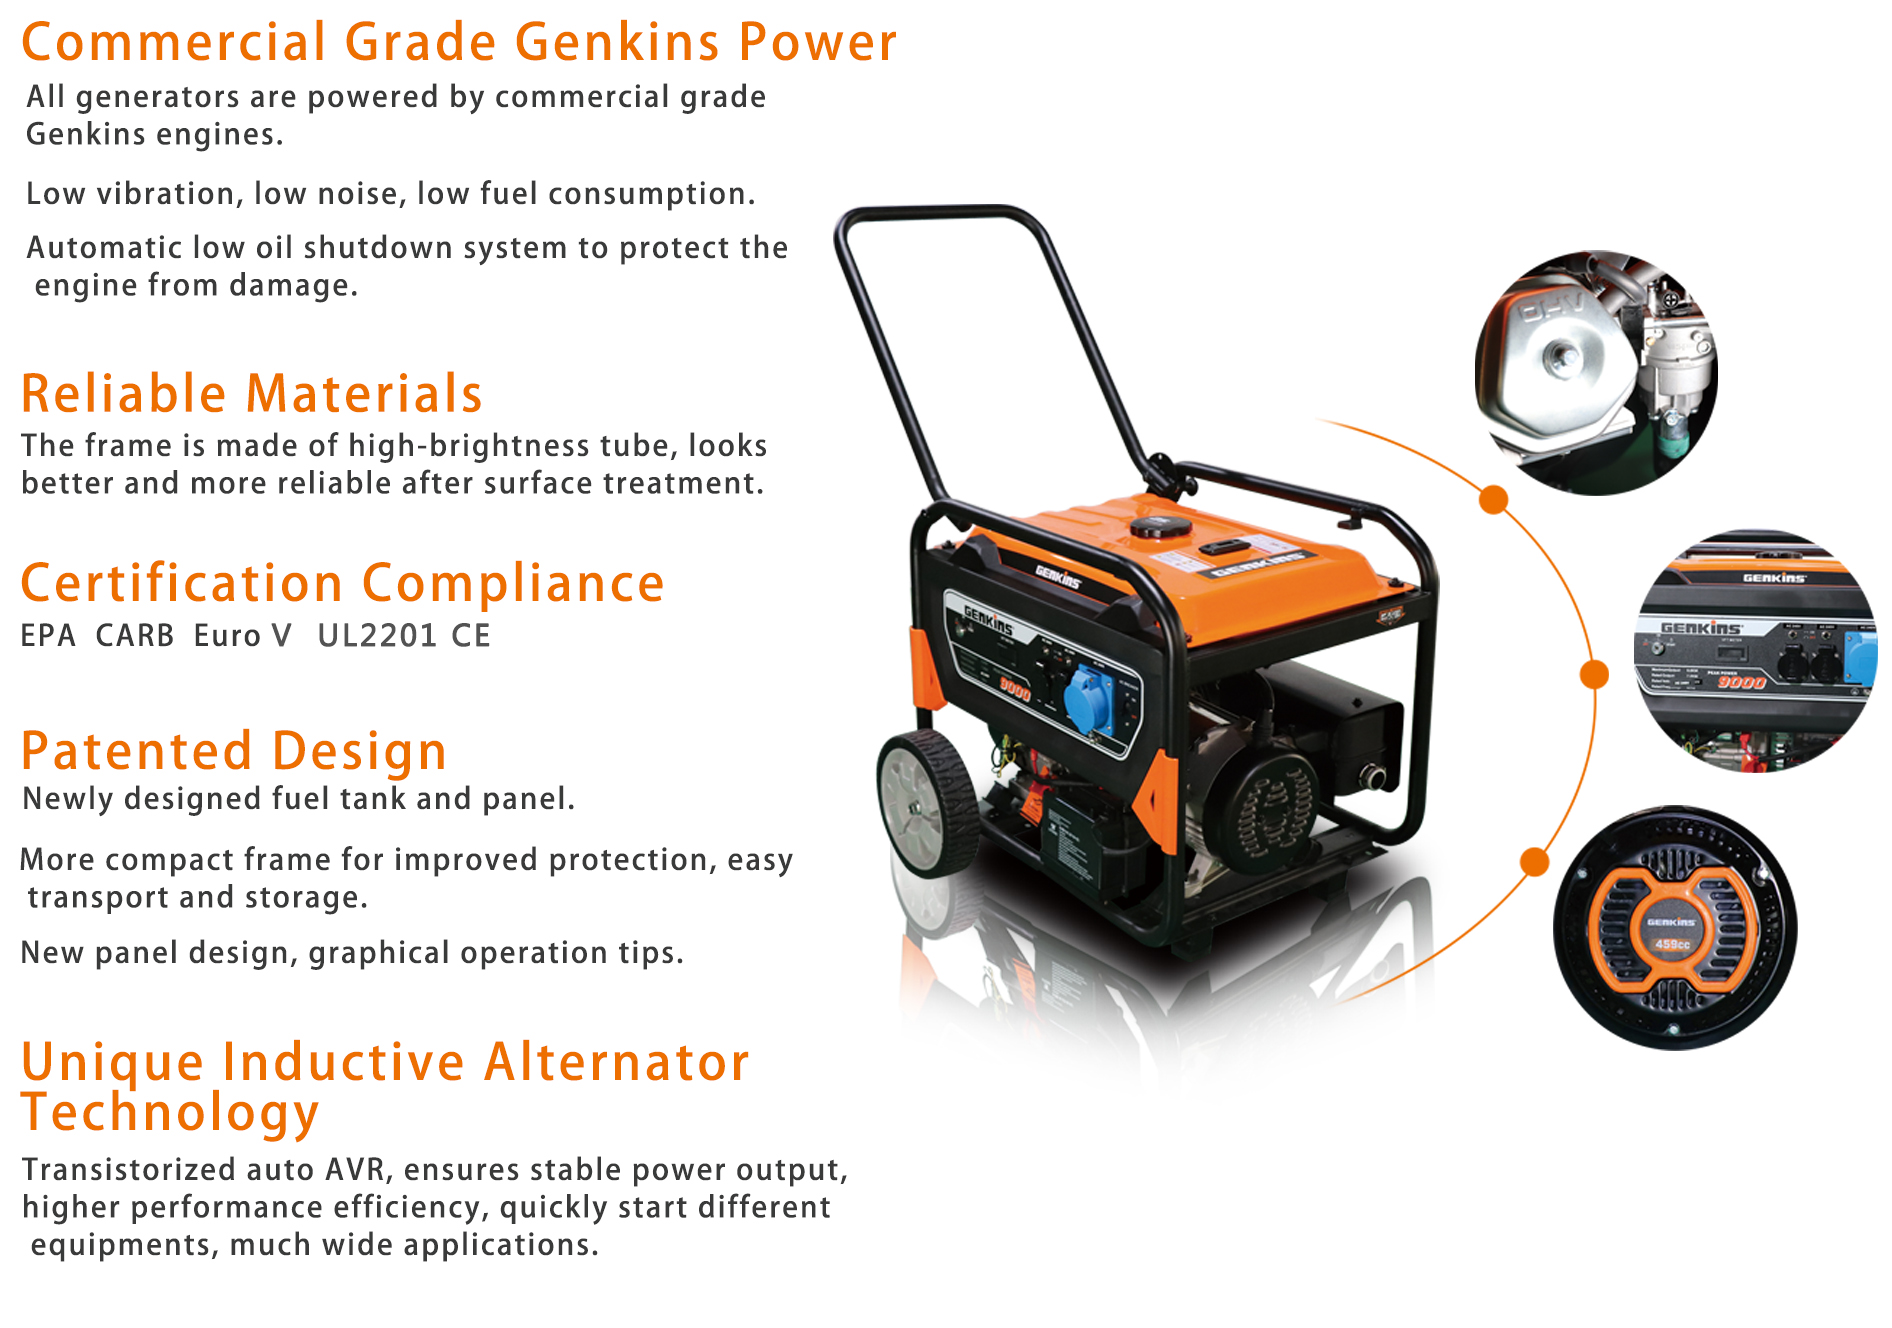 "gensetspeci - 9000W Gasoline Generator -<img class=""aligncenter size-full wp-image-18683"" src=""https://unpluggedpowersystems.ca/wp-content/uploads/2019/01/9000spec_f752.jpg"" alt="""" width=""1112"" height=""348"" /> - genset-ac-gas - gensetspeci"